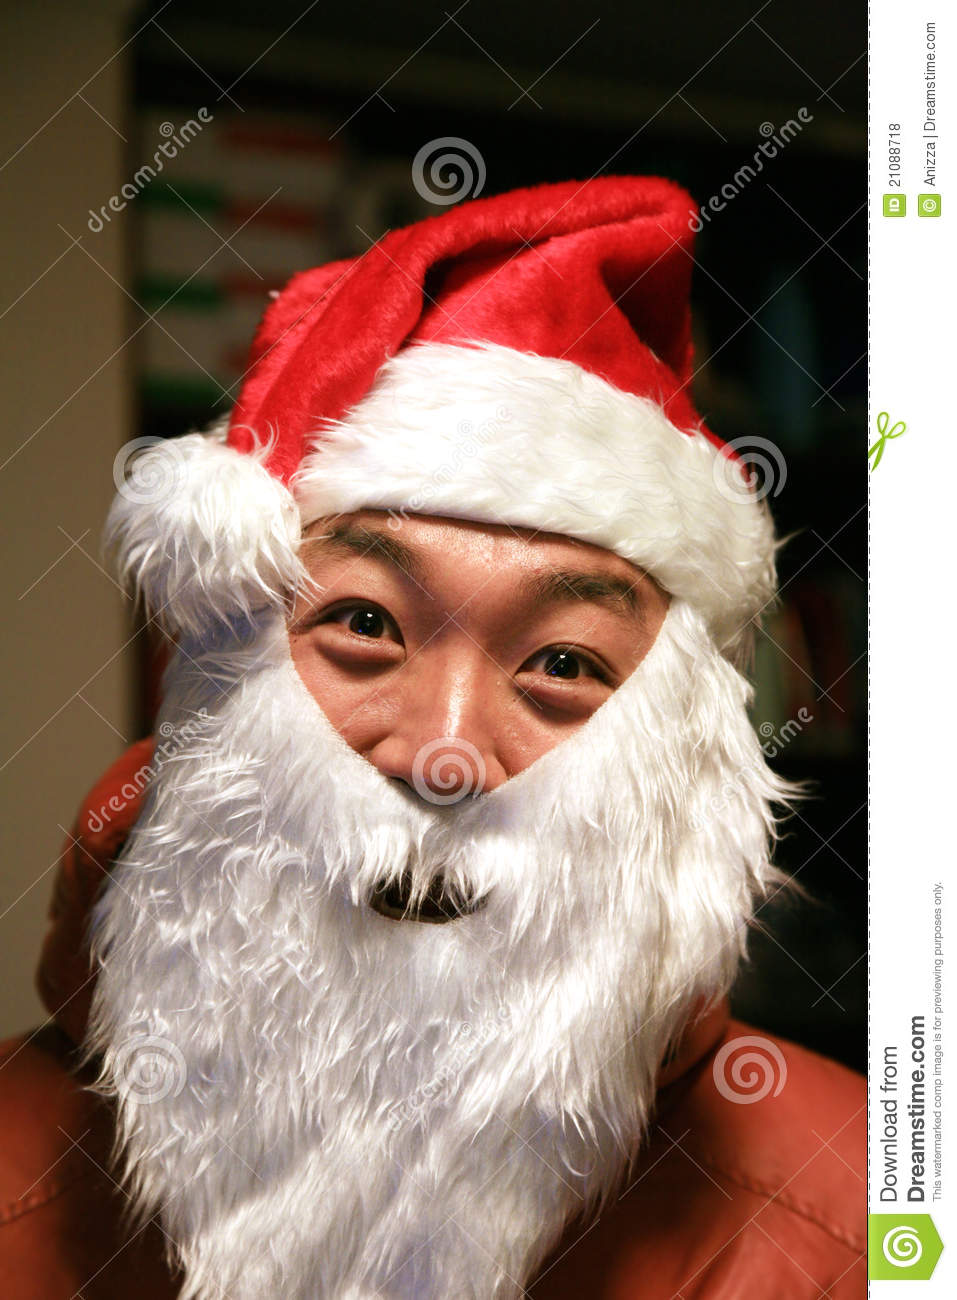 asian santa claus stock photo image of santa claus. Black Bedroom Furniture Sets. Home Design Ideas